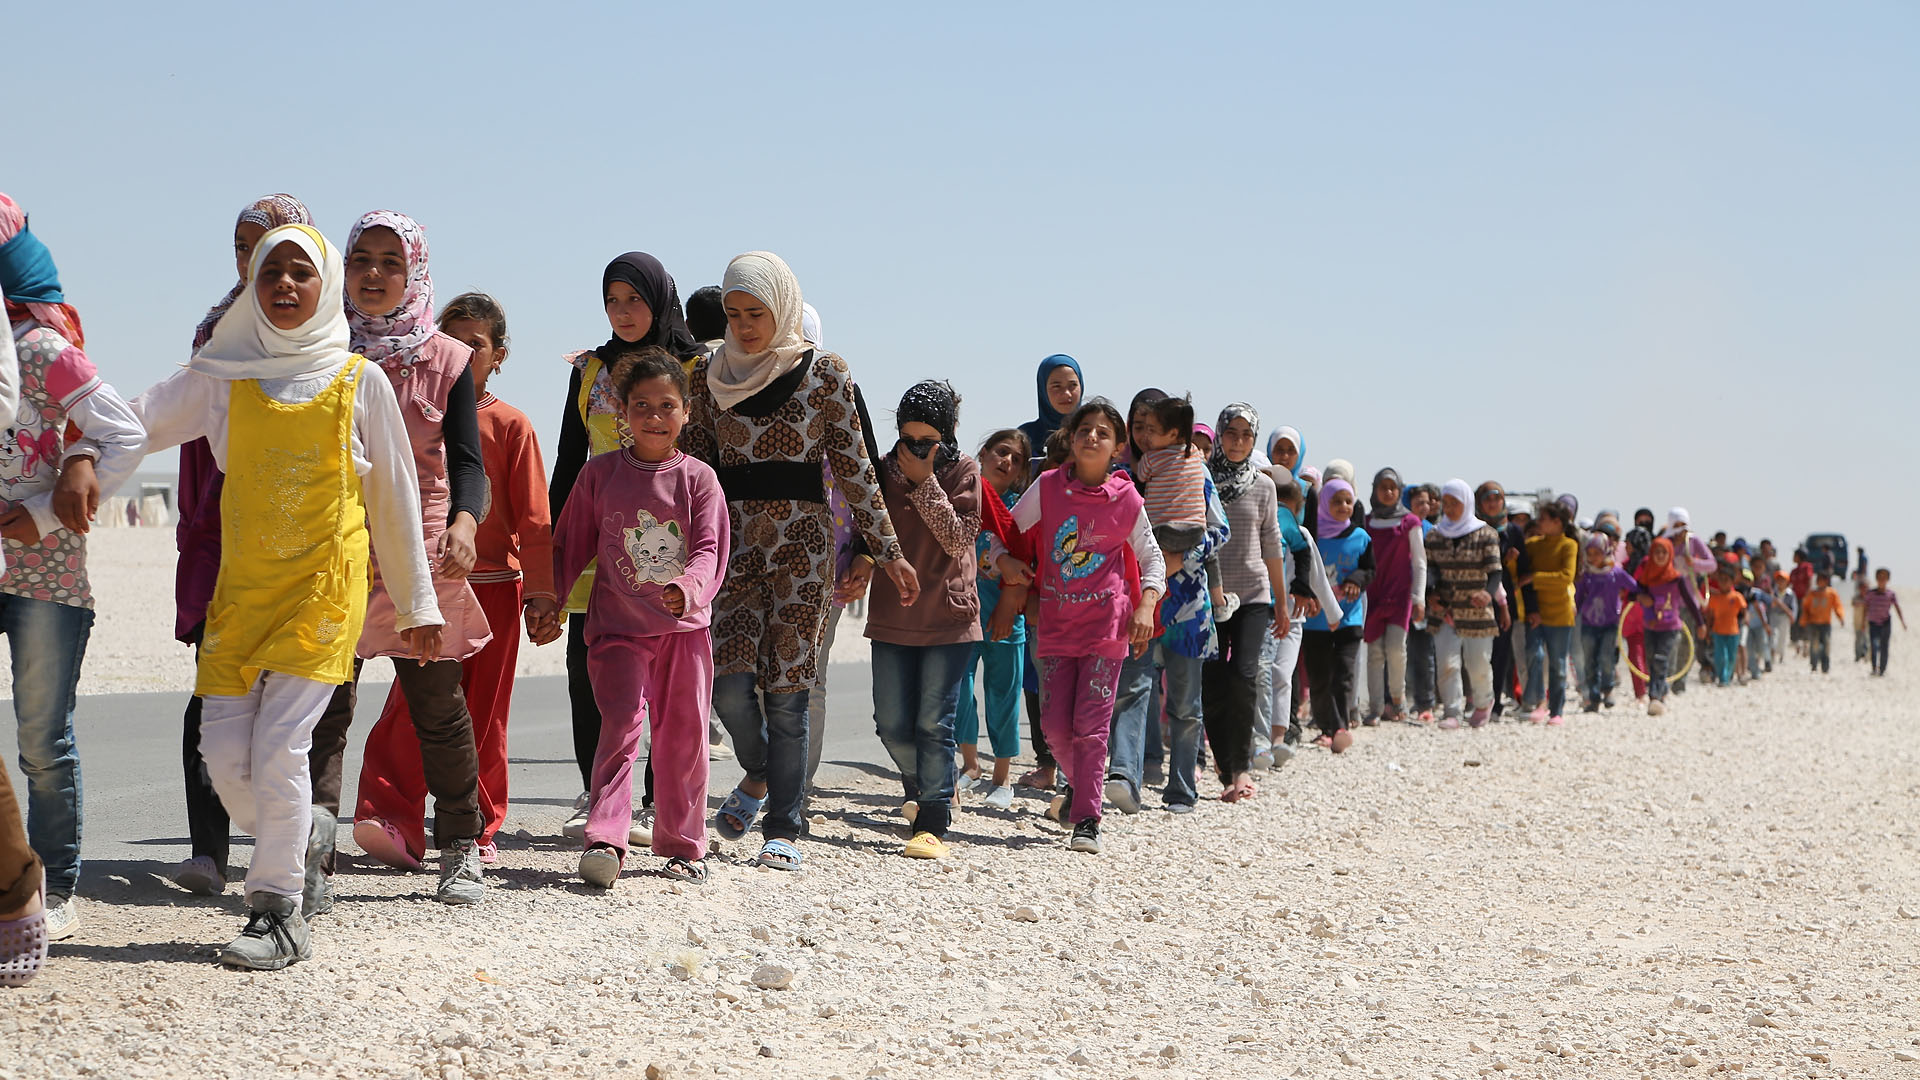 Event: Bill Jasper on the agenda behind the refugee crisis